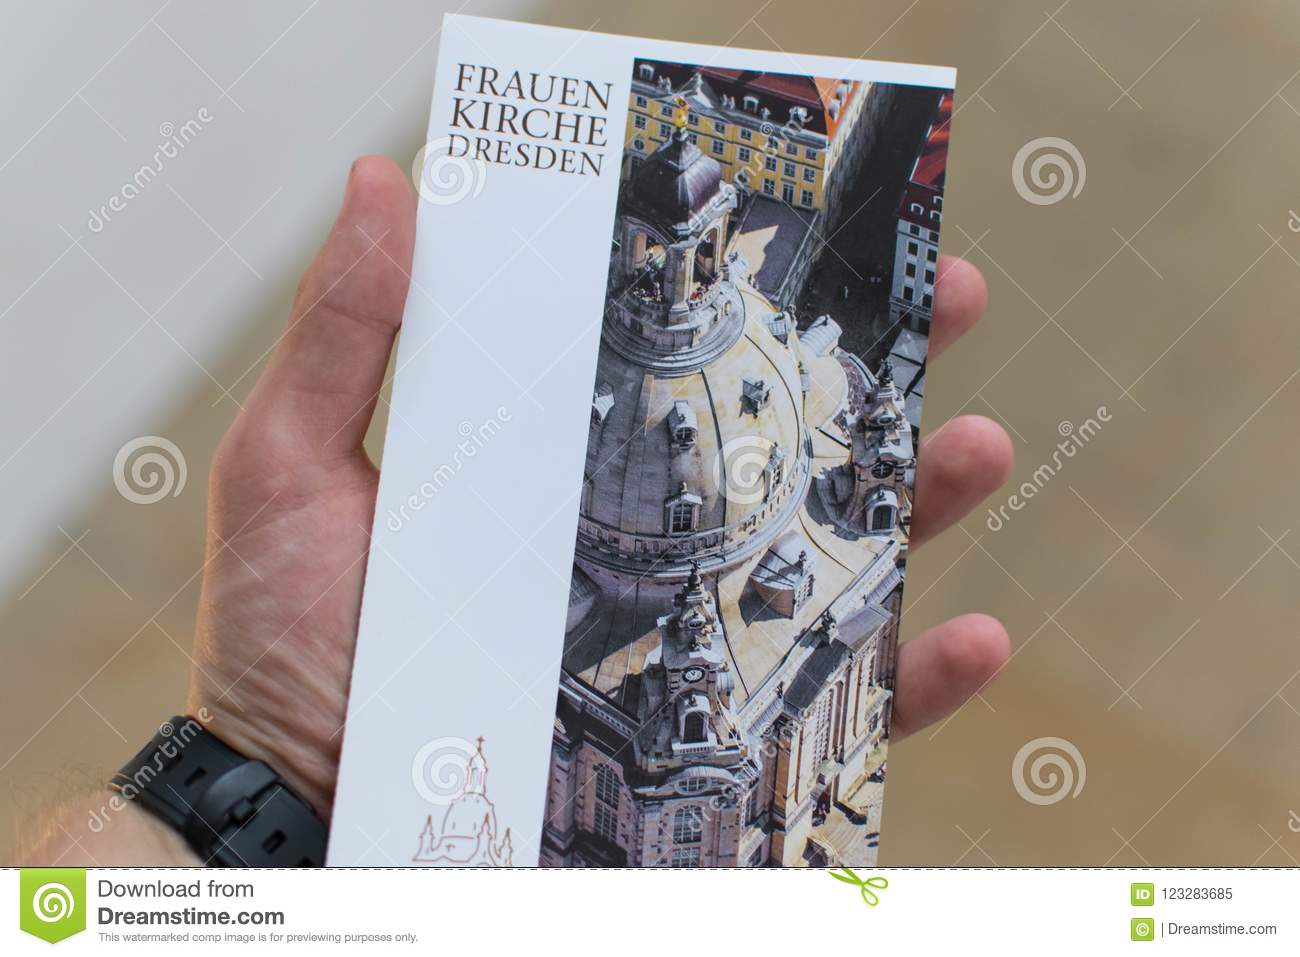 July 20, 2007 Dresden. Germany Church of the Frauenkirche. A postcard with the history of the church in the hands.